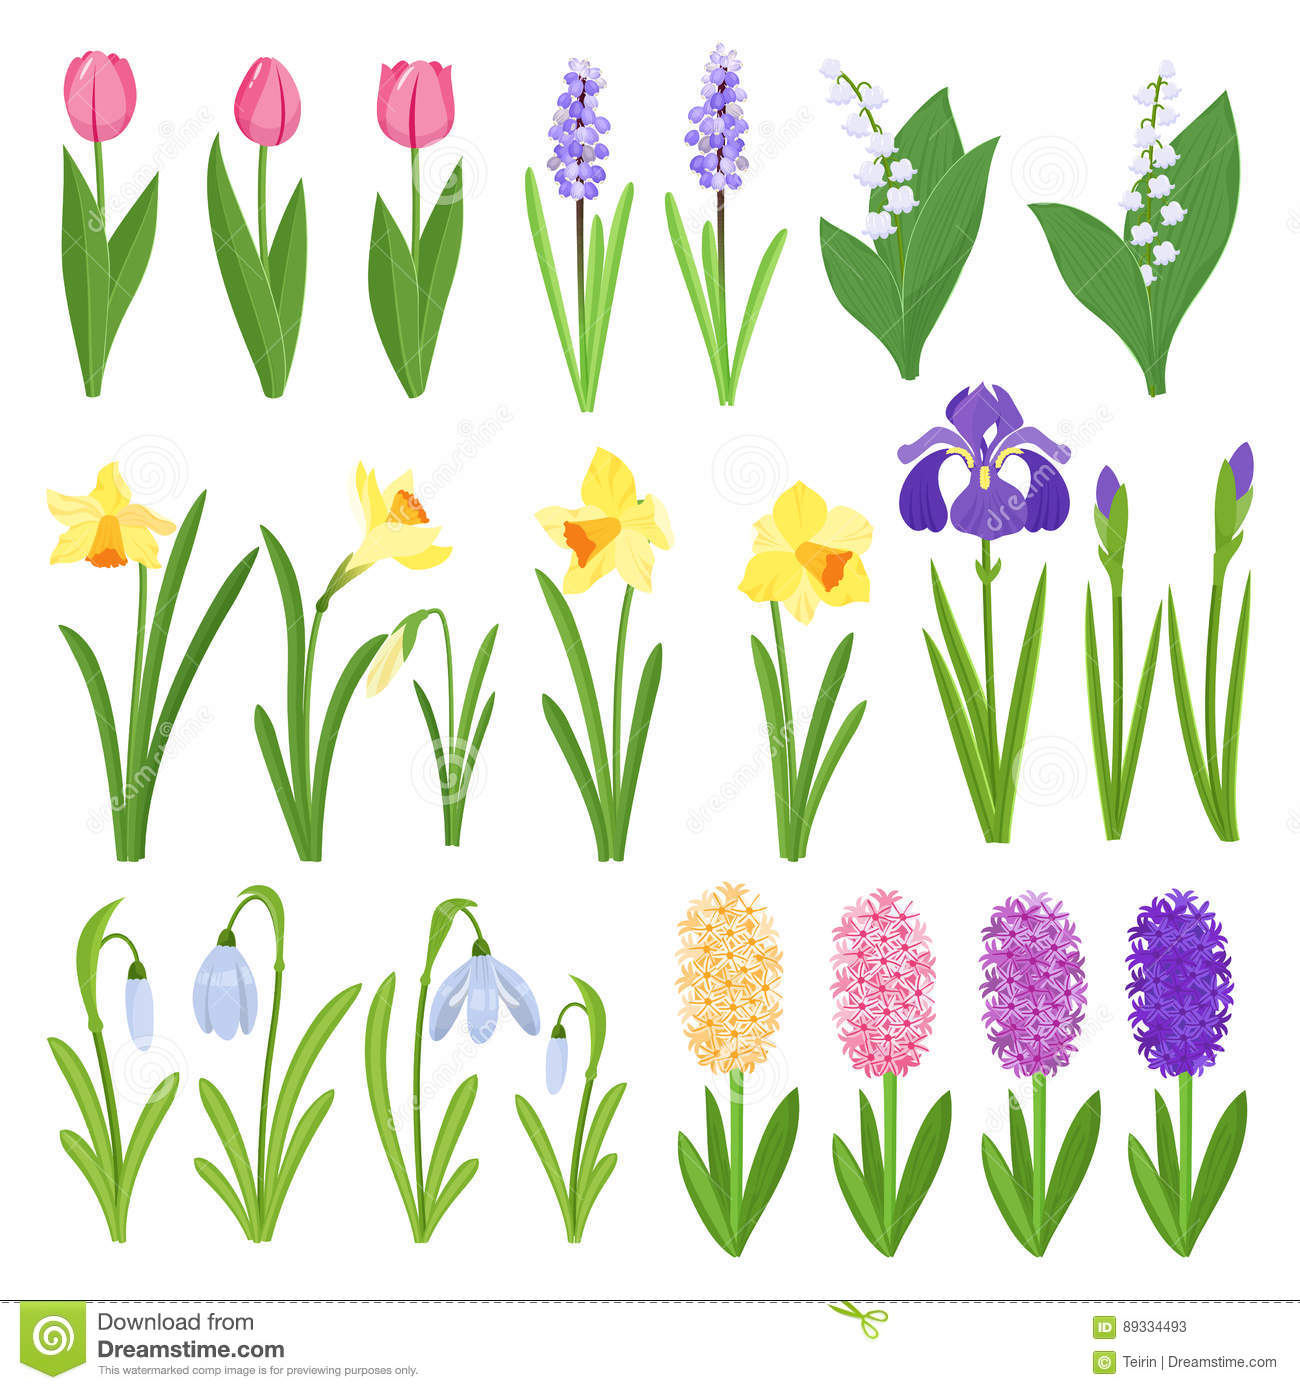 Garden Design Graphics spring flowers. irises, lilies of valley, tulips, narcissuses